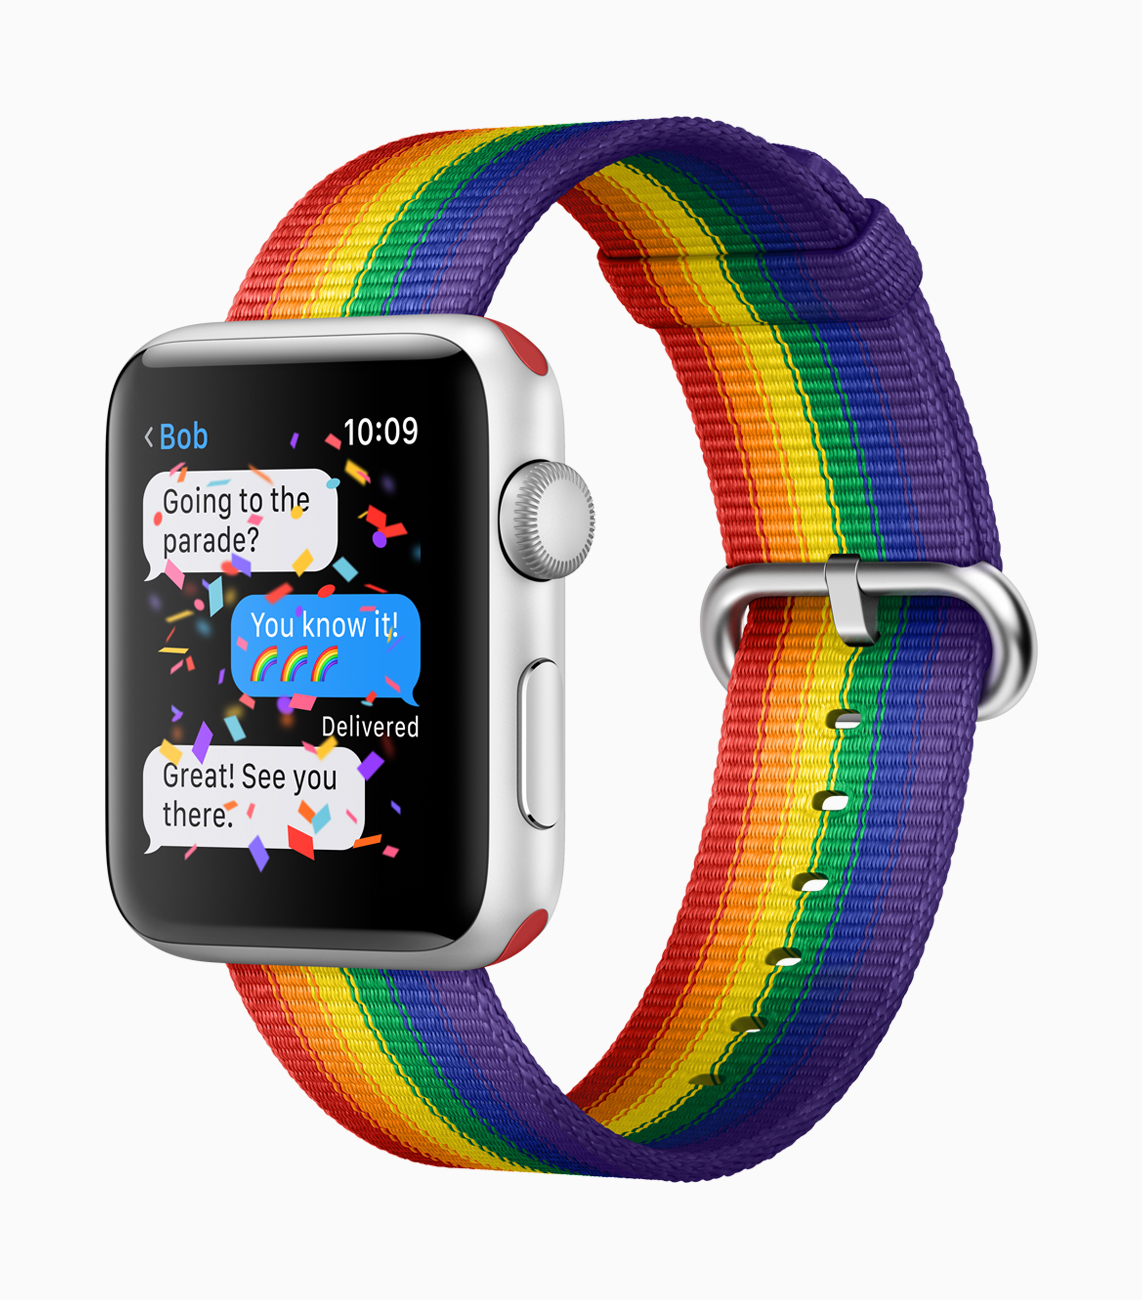 New Apple Watch Bands Including Pride Band Available Now for Summer